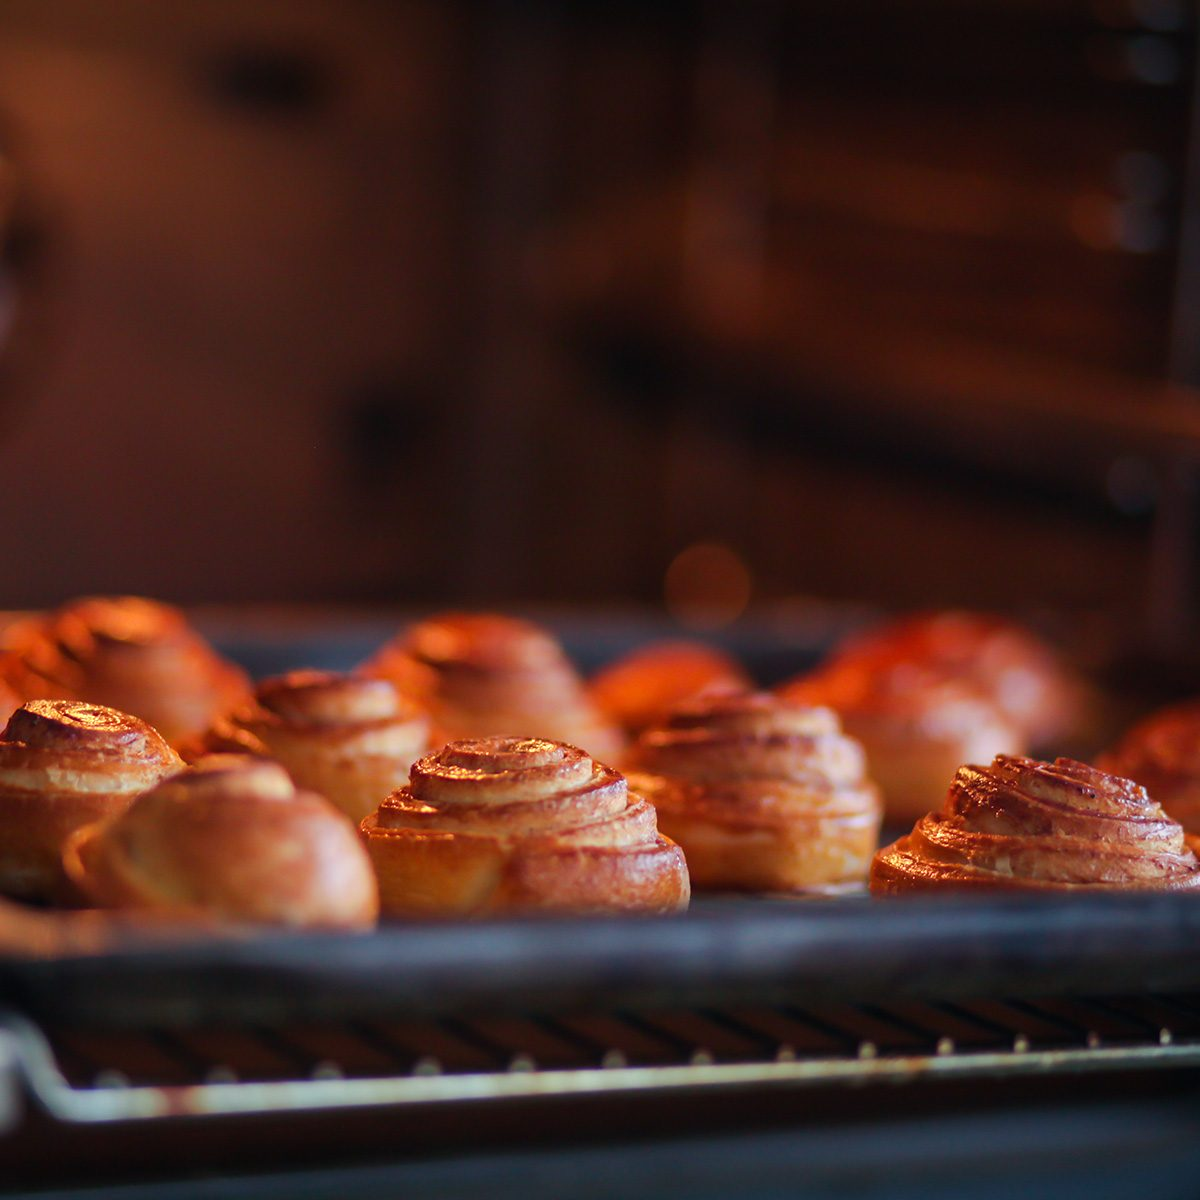 cinnamon rolls are baked in the oven